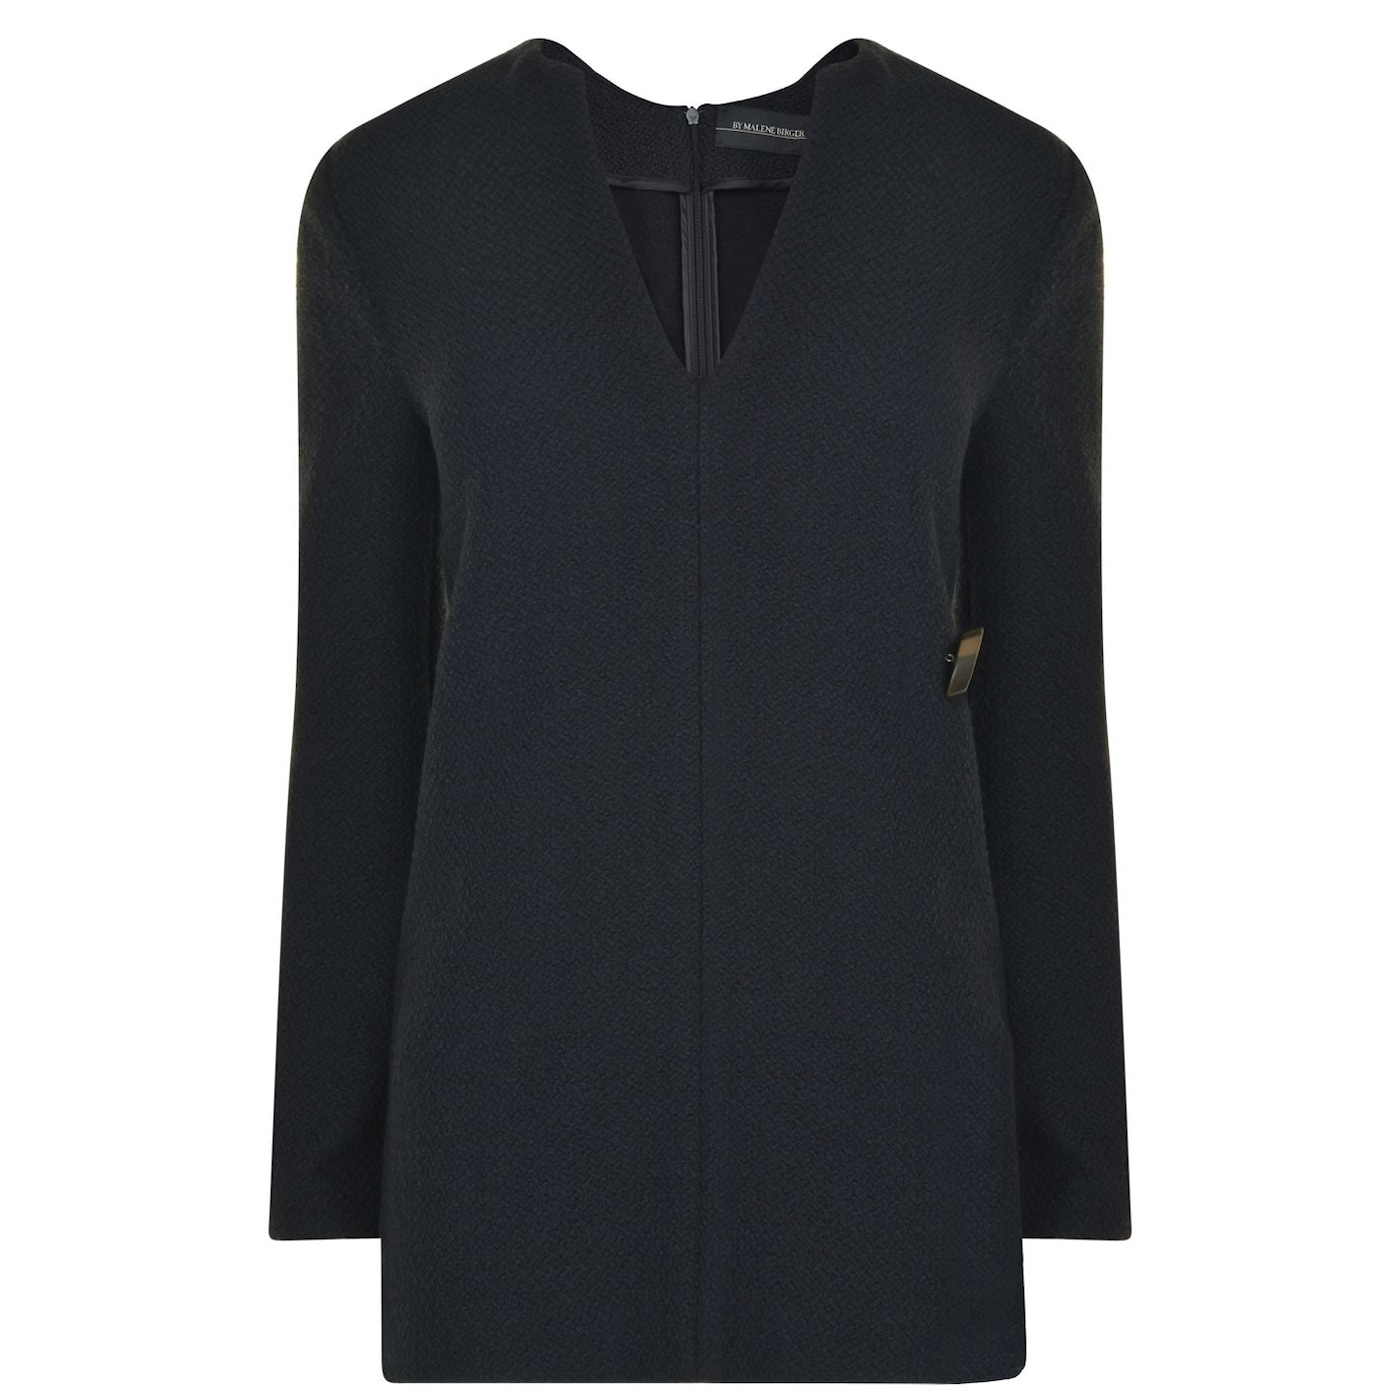 BY MALENE BIRGER Side Split Top